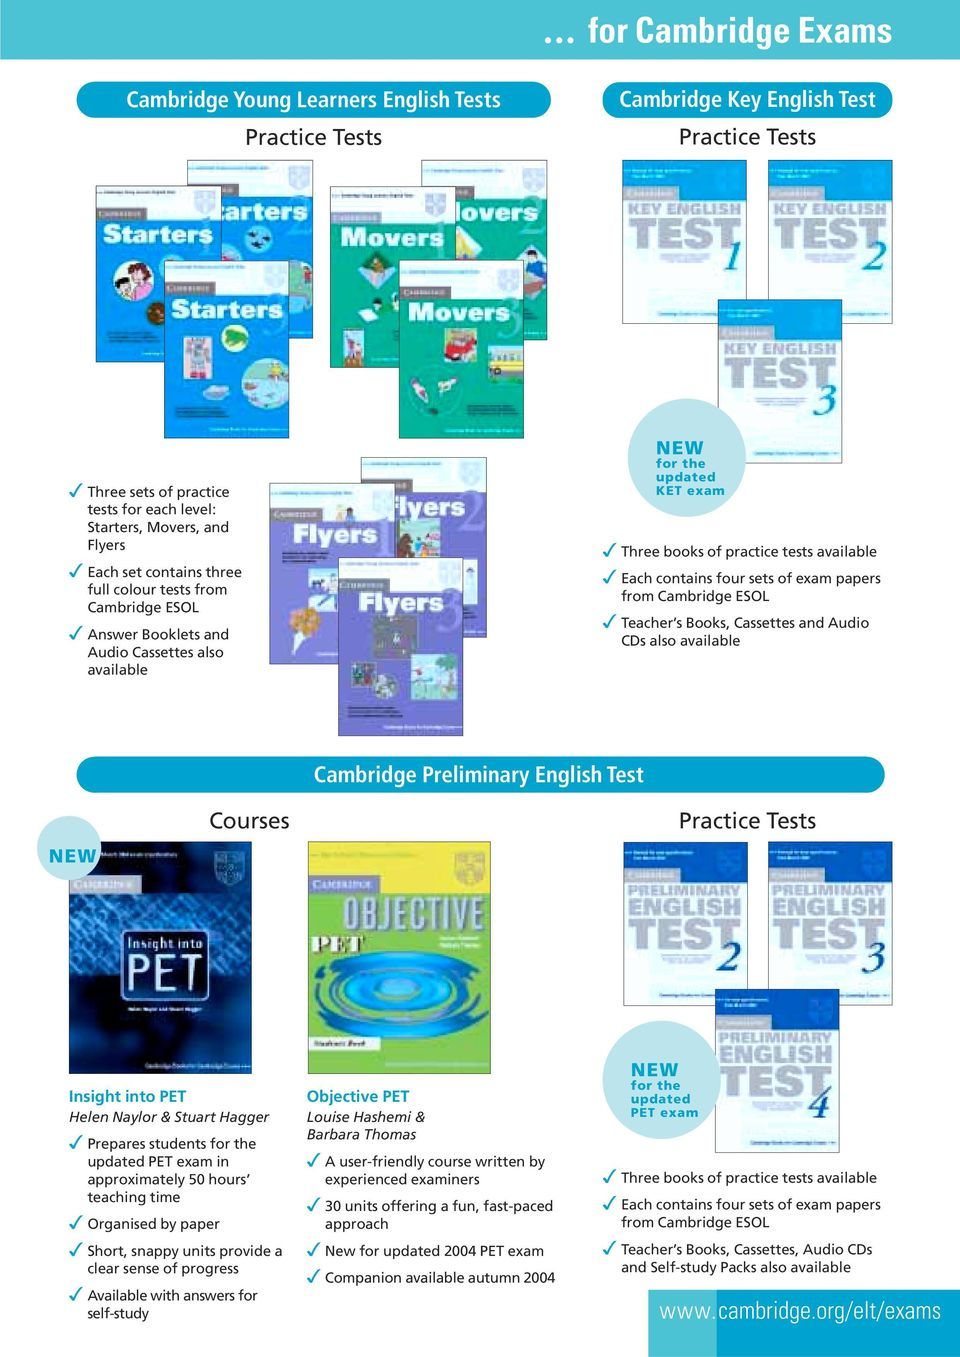 Booklets and Audio Cassettes also for the updated KET exam Three books of practice  tests Each